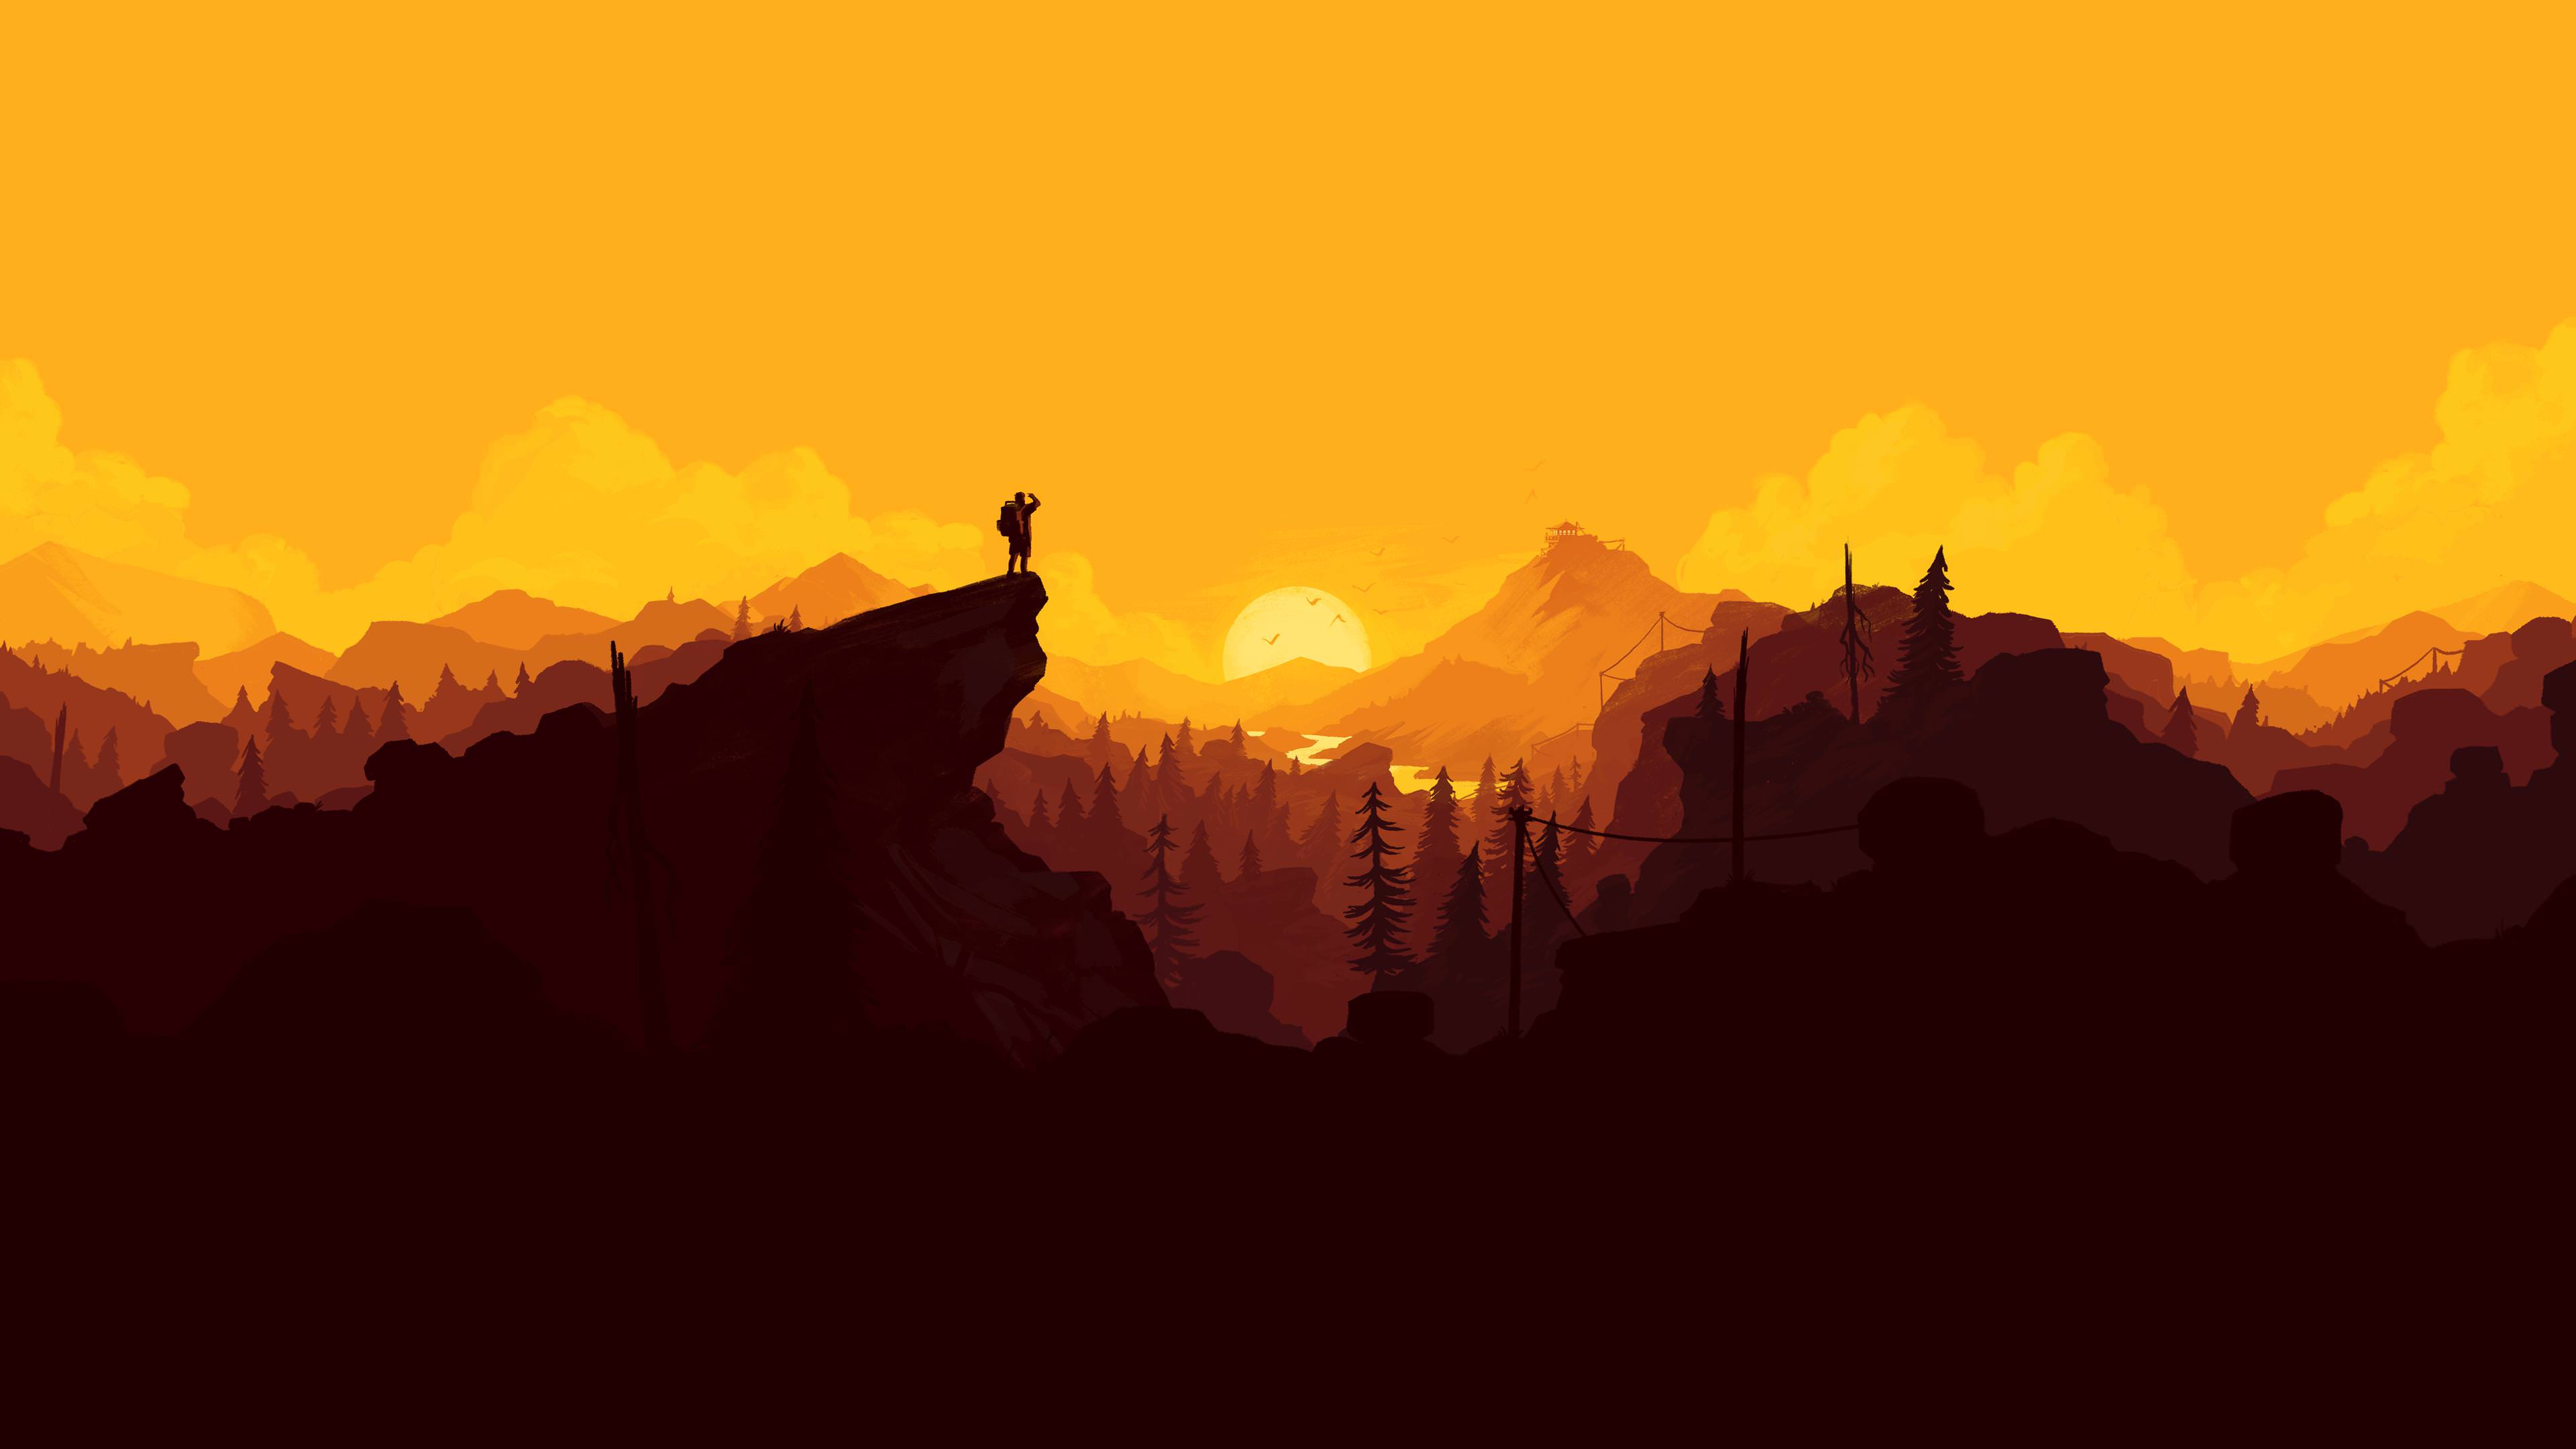 Yellow Gaming Wallpapers Top Free Yellow Gaming Backgrounds Wallpaperaccess